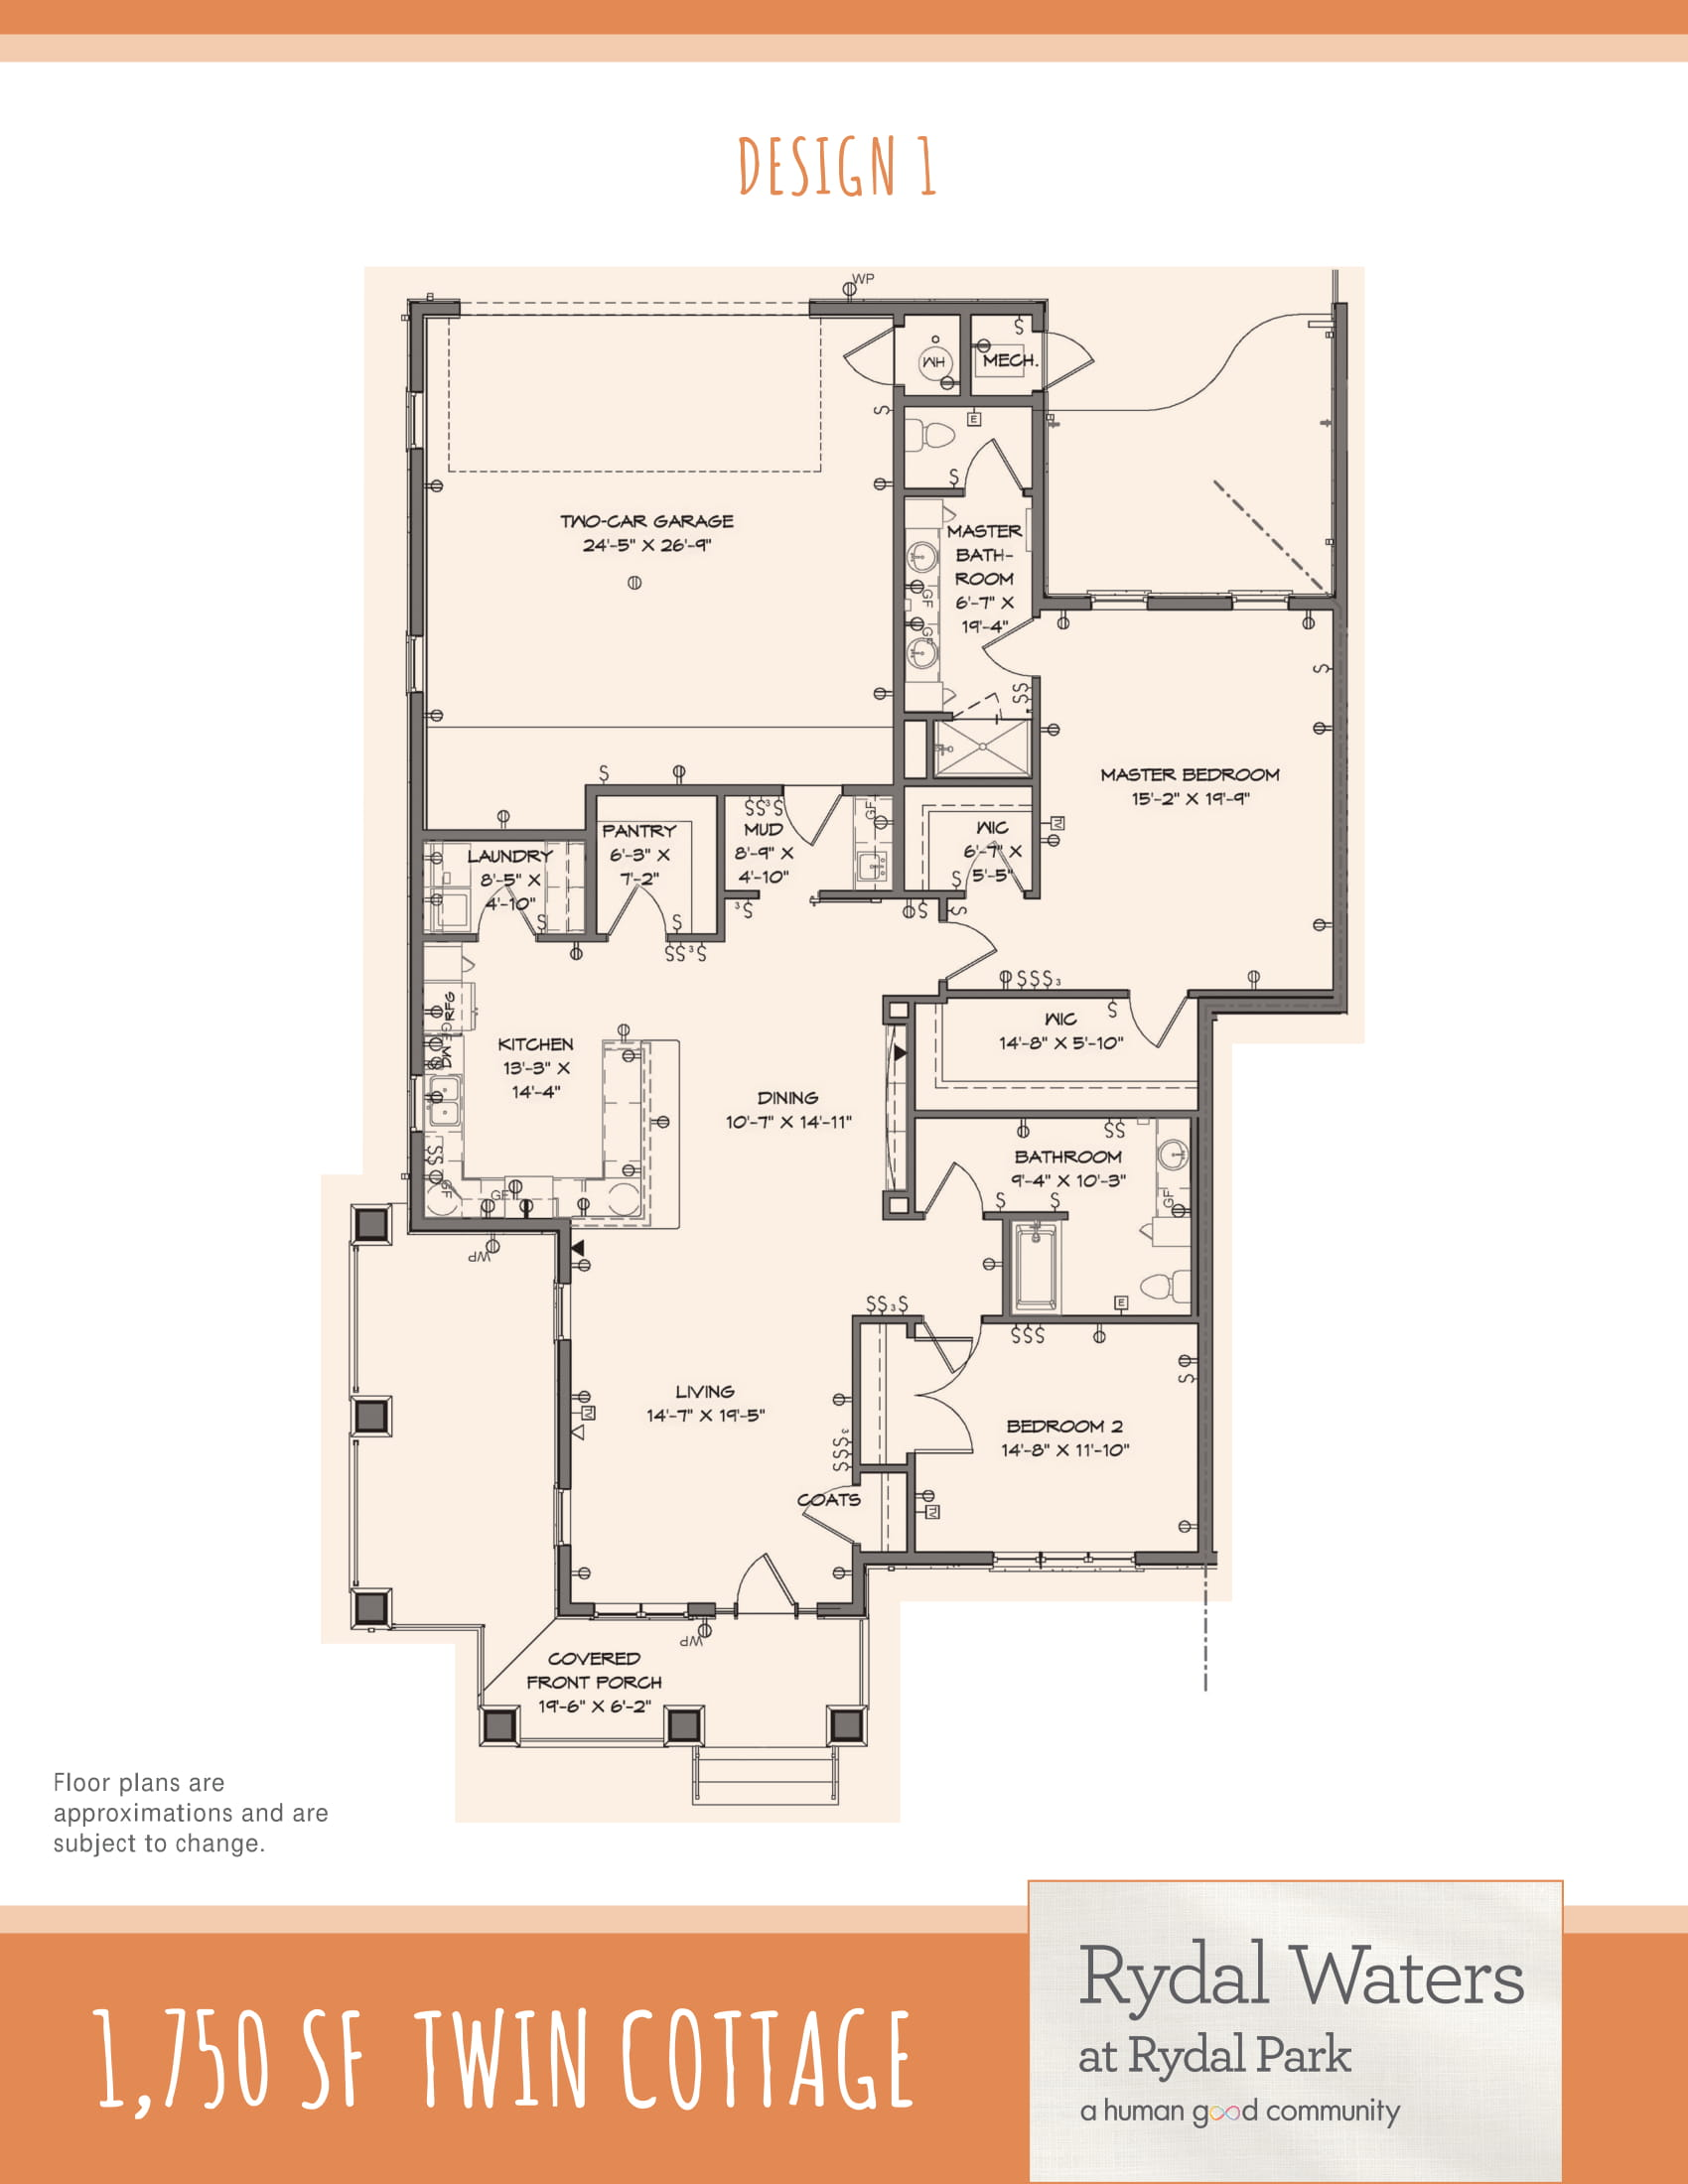 rydal-waters-cottage1750_Design1-1